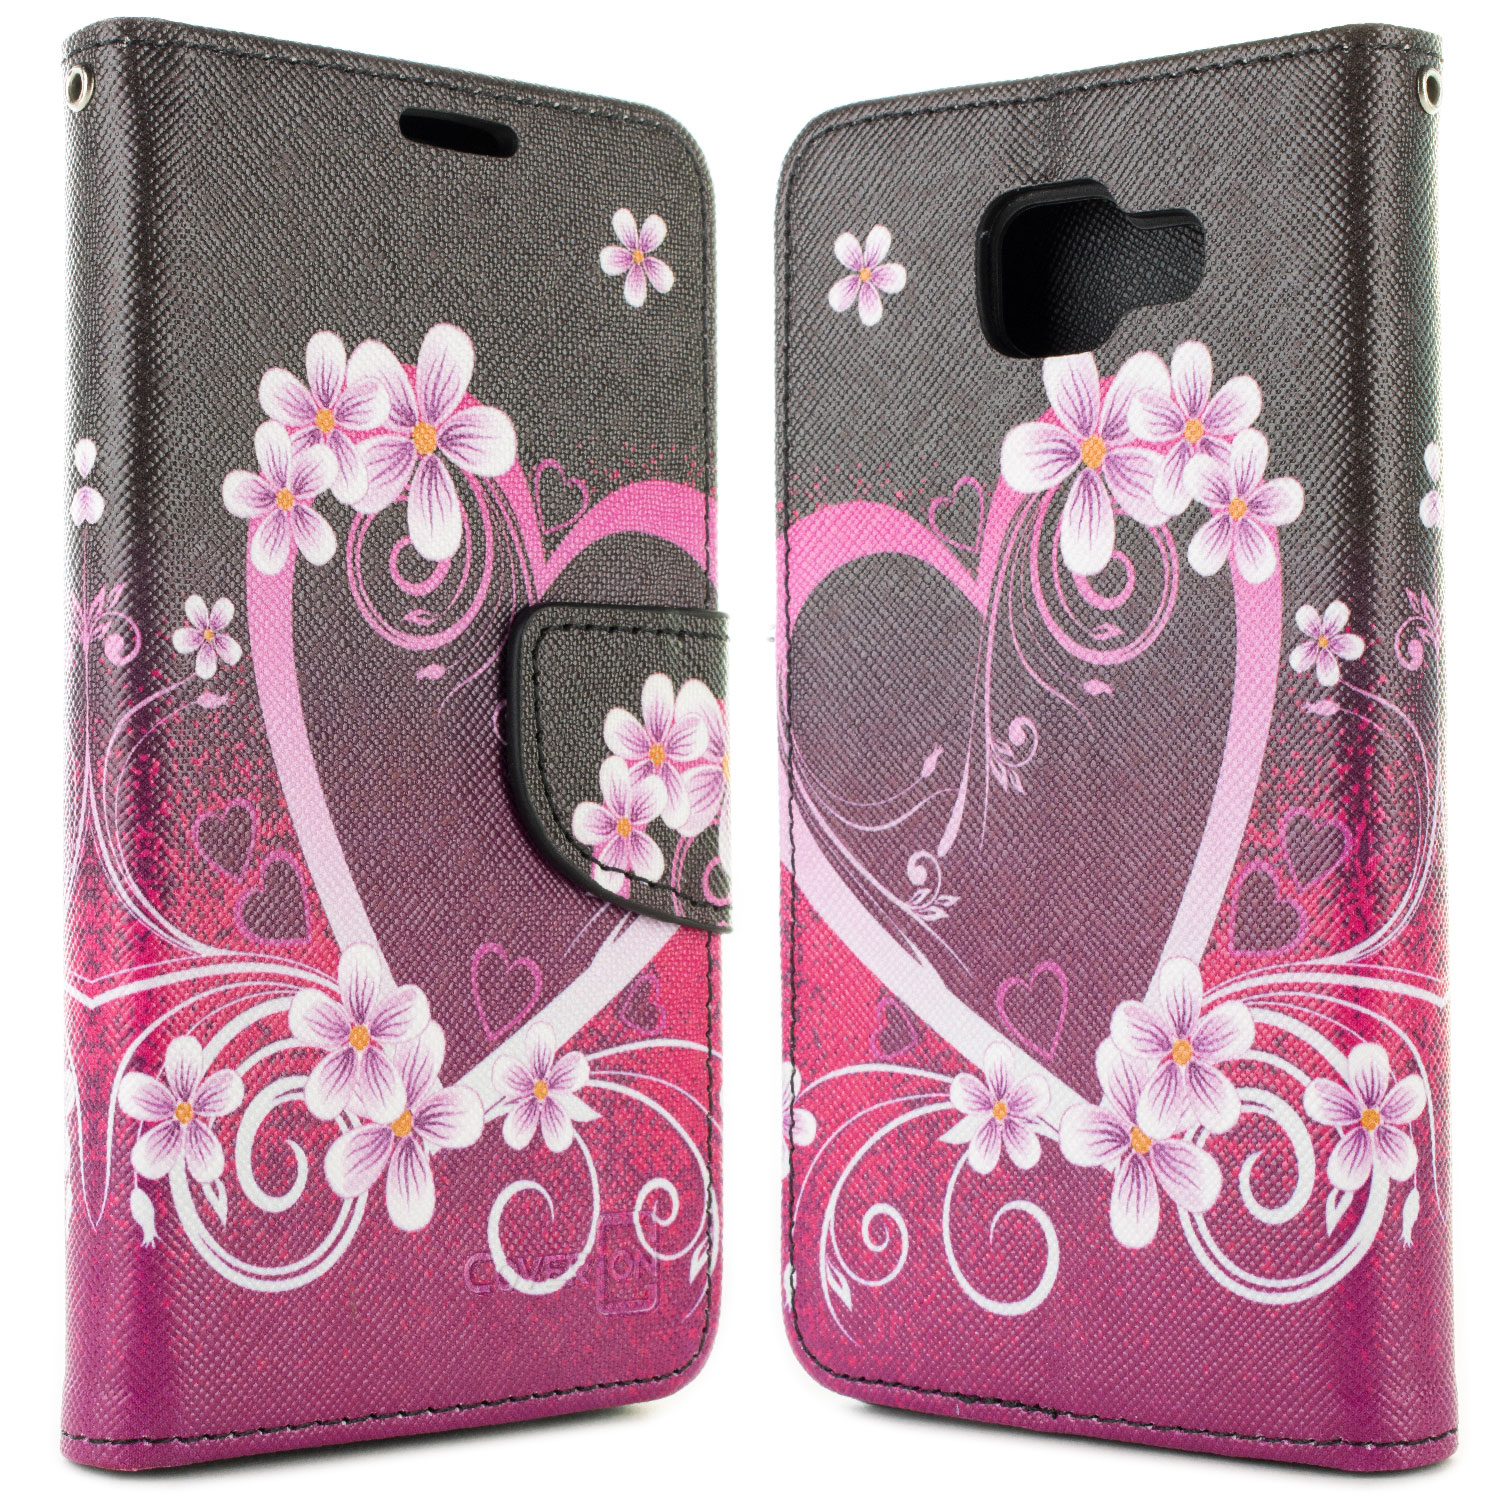 buy popular b8663 6b9b7 Details about Purple Heart Wallet Pouch Case Screen Protector For Samsung  Galaxy A5 2016 A510